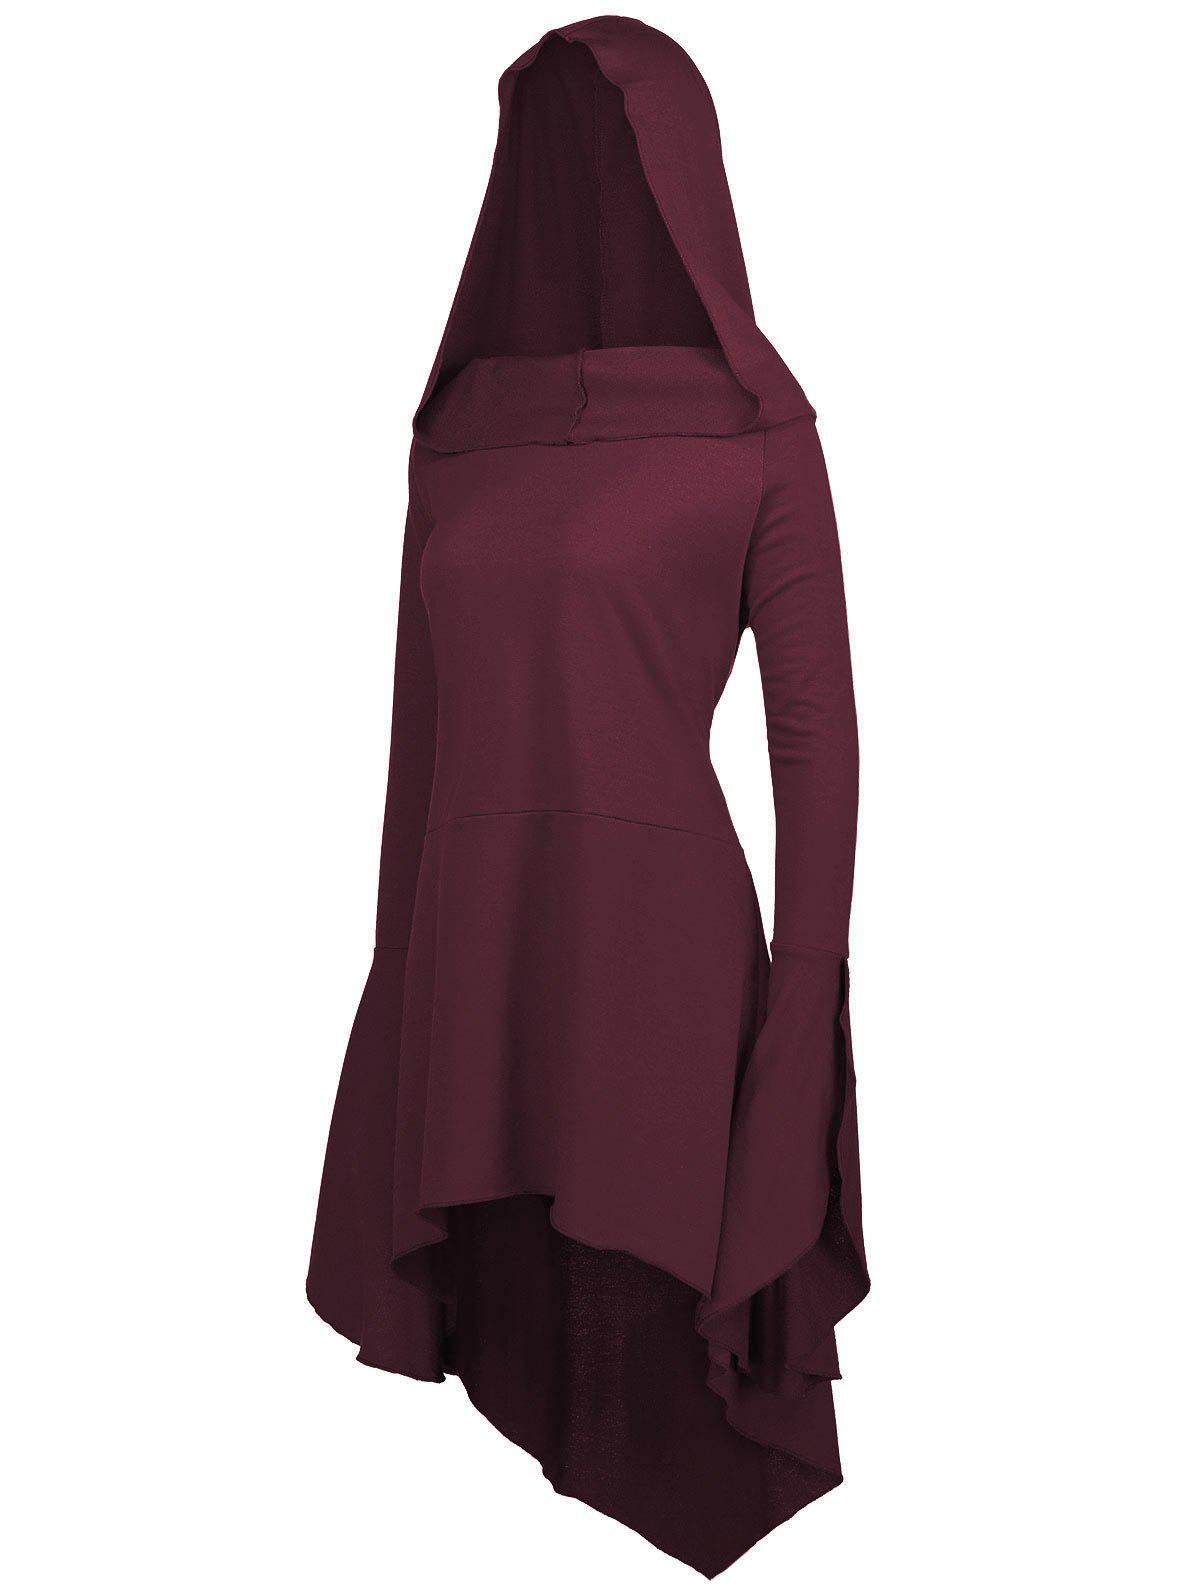 Flare Sleeve Long Plus Size High Low HoodieWOMEN<br><br>Size: 4XL; Color: BORDEAUX; Material: Polyester,Spandex; Shirt Length: Long; Sleeve Length: Full; Style: Fashion; Pattern Style: Solid; Season: Fall,Spring; Weight: 0.7100kg; Package Contents: 1 x Hoodie;